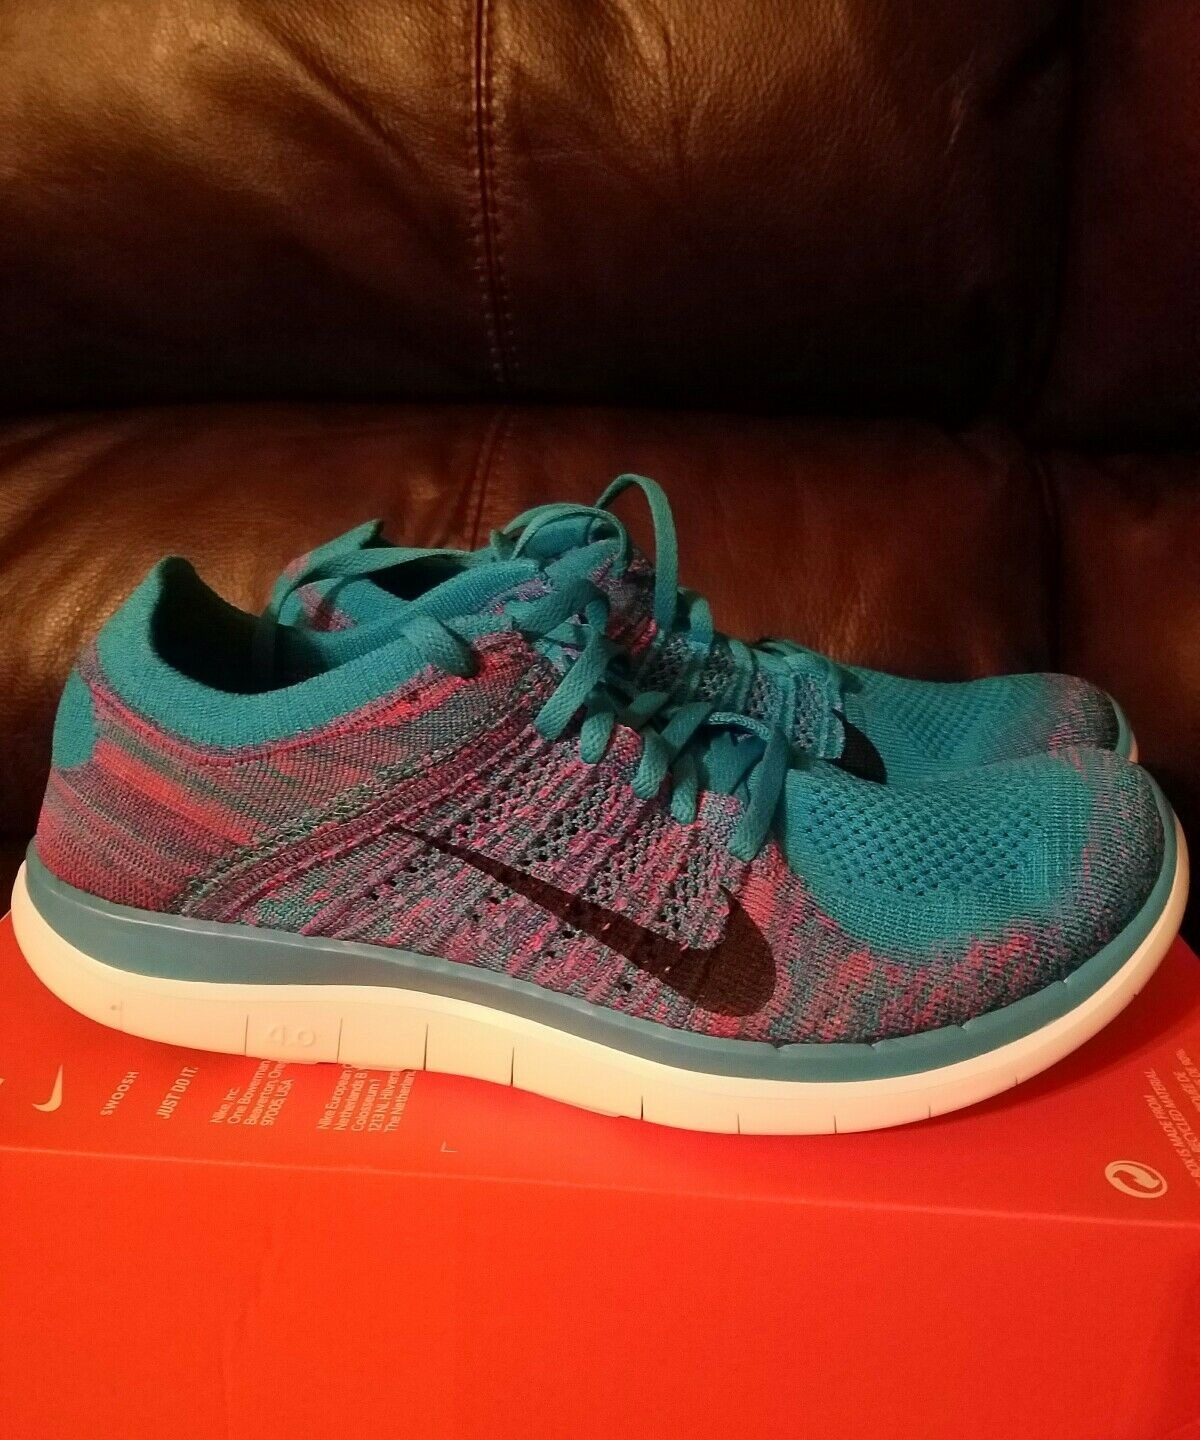 Nike free 4.0 flyknit  Cheap and fashionable